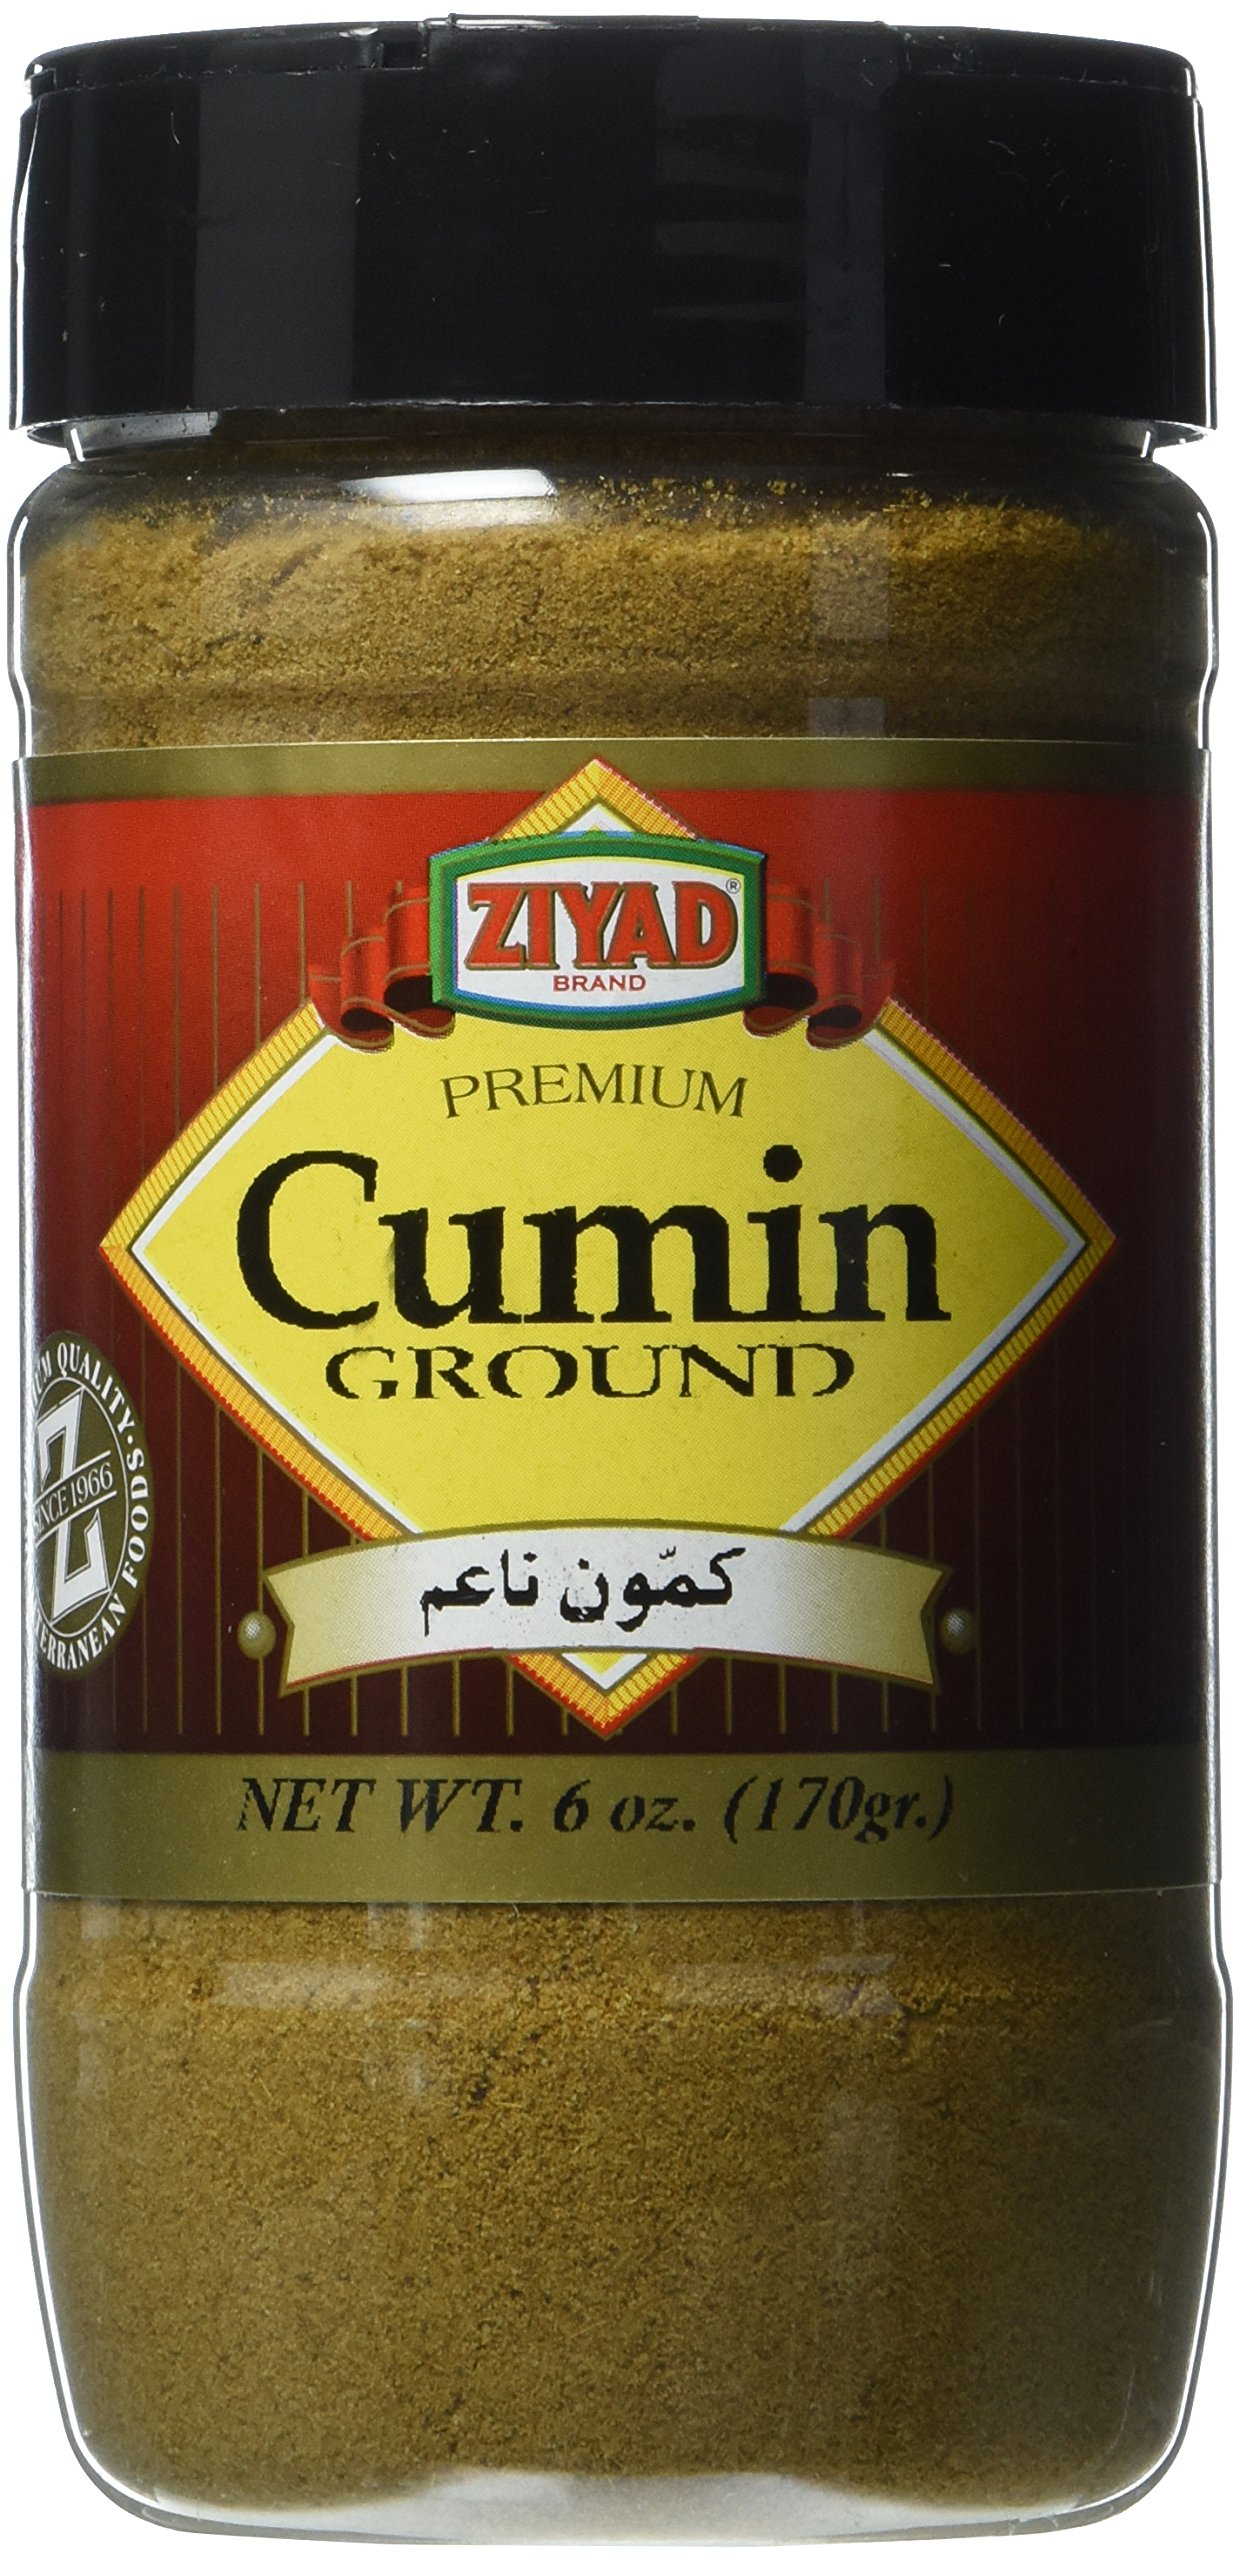 Ziyad Premium Cumin Powder, 6 Ounce by Ziyad (Image #1)